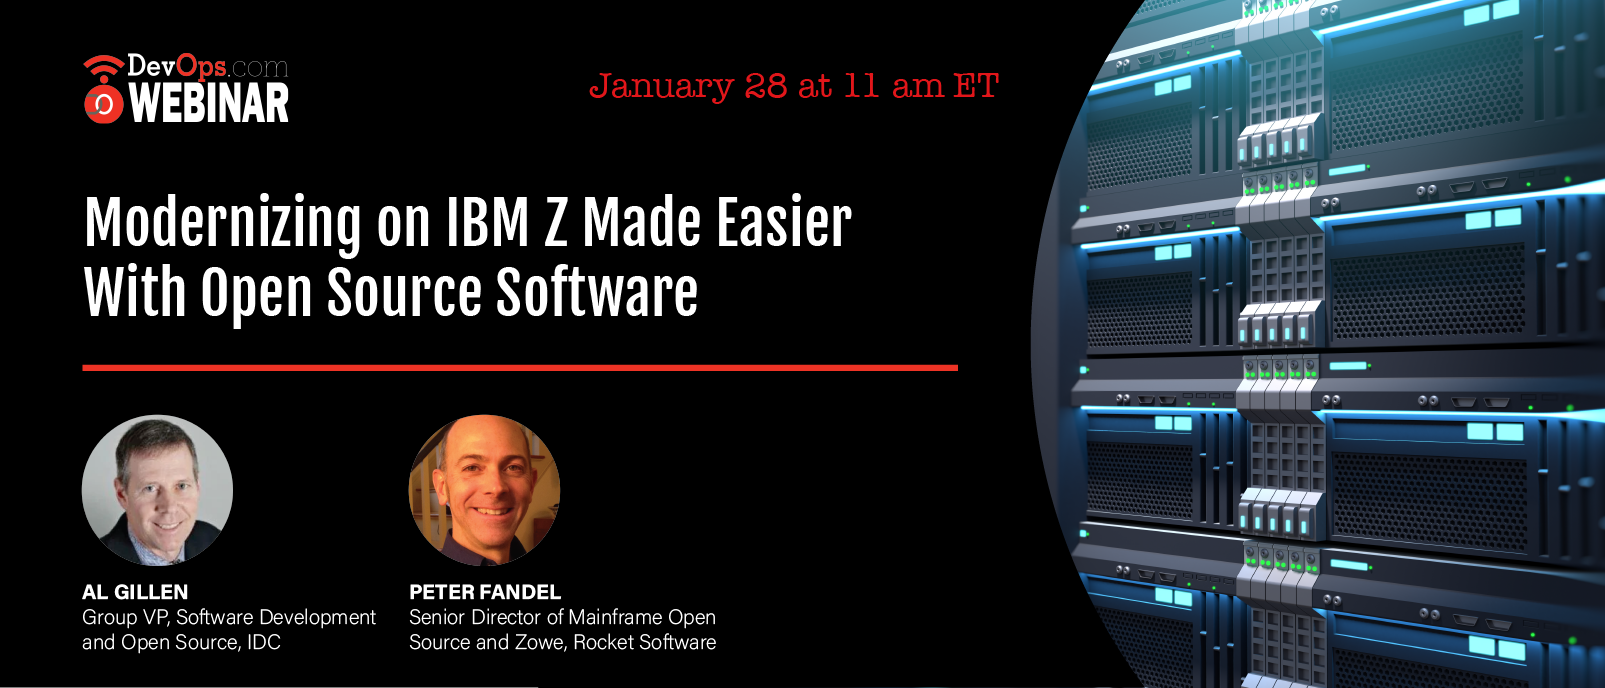 Modernizing on IBM Z Made Easier With Open Source Software